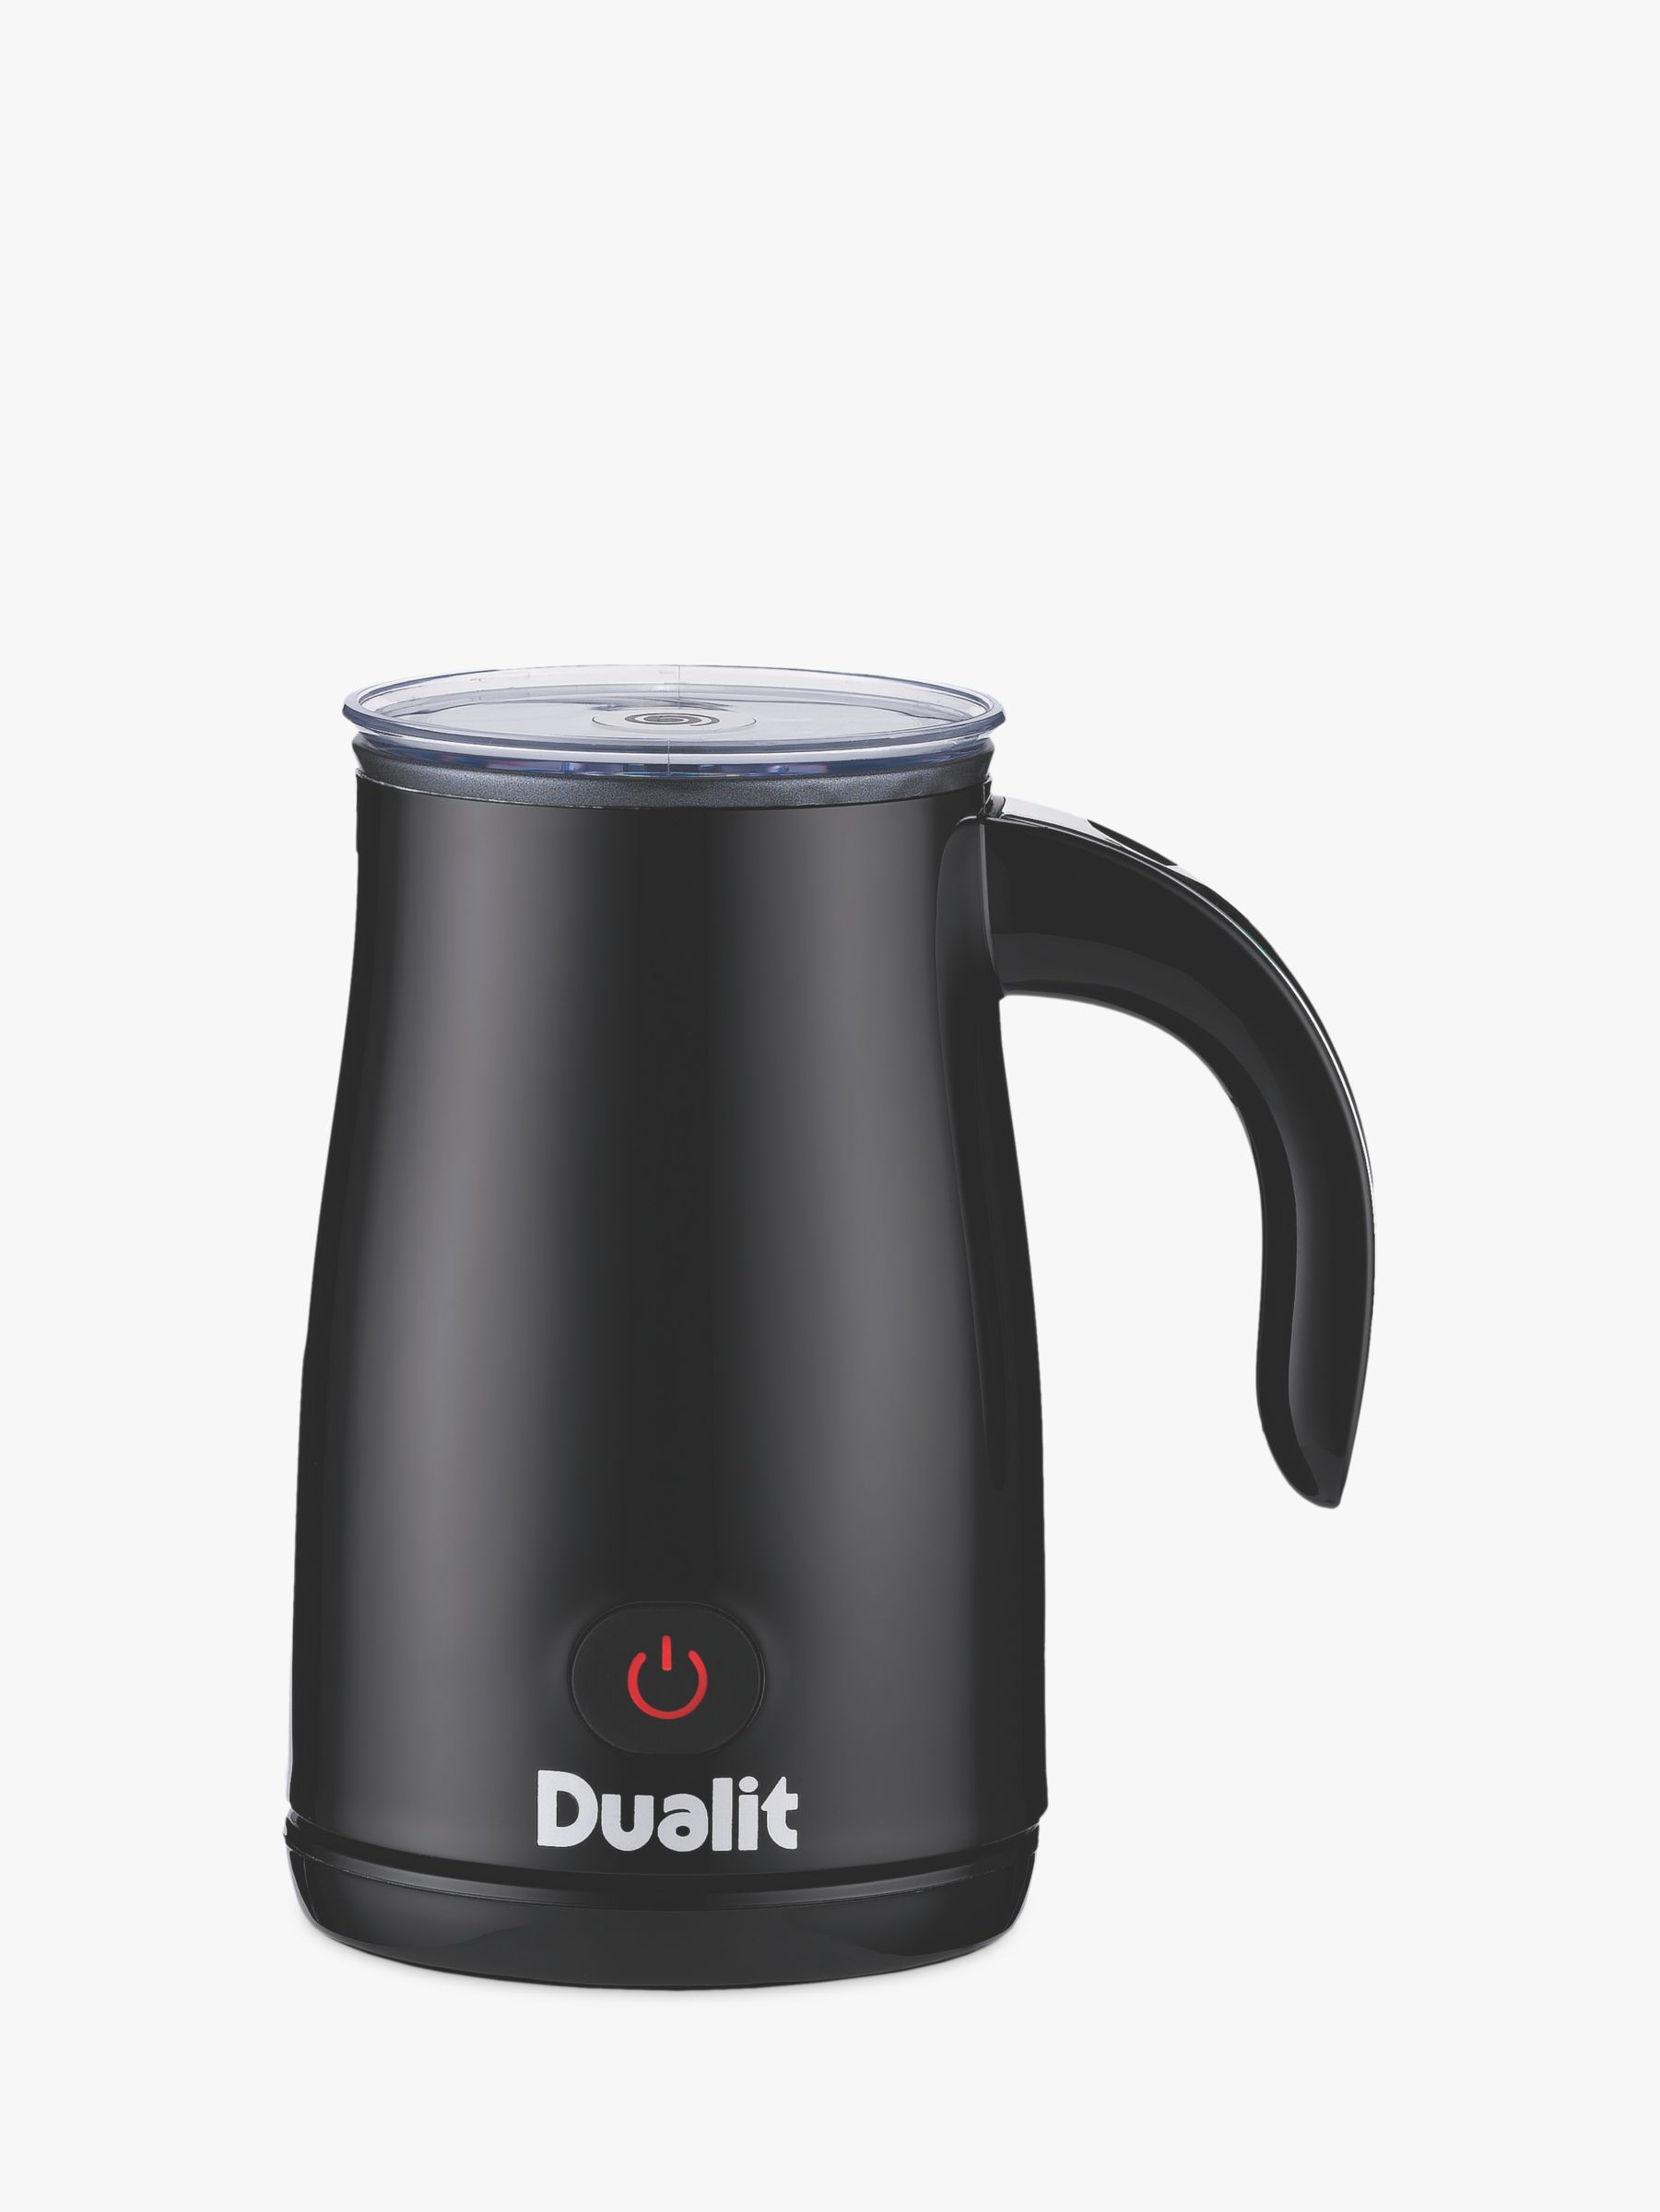 Dualit Dualit Milk Frother, Black